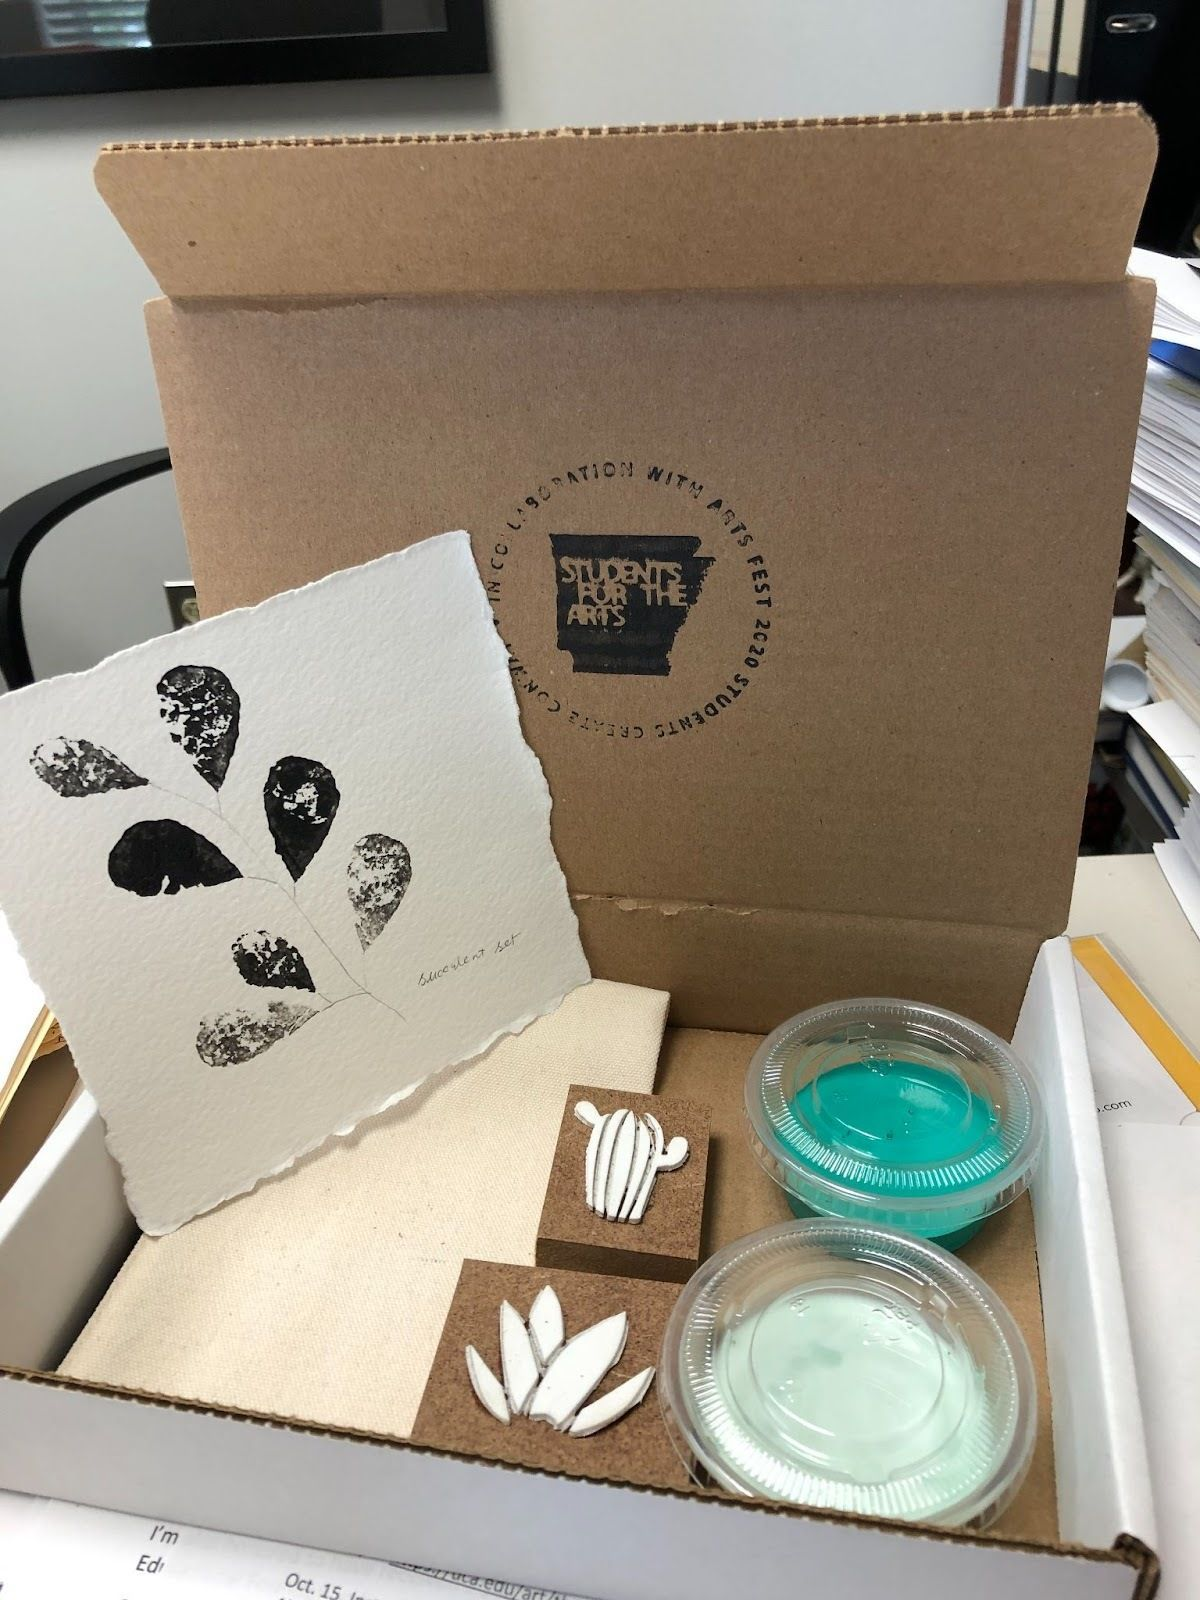 A Students for the Arts branded box contains supplies for a self-care arts project using paint and stamps.